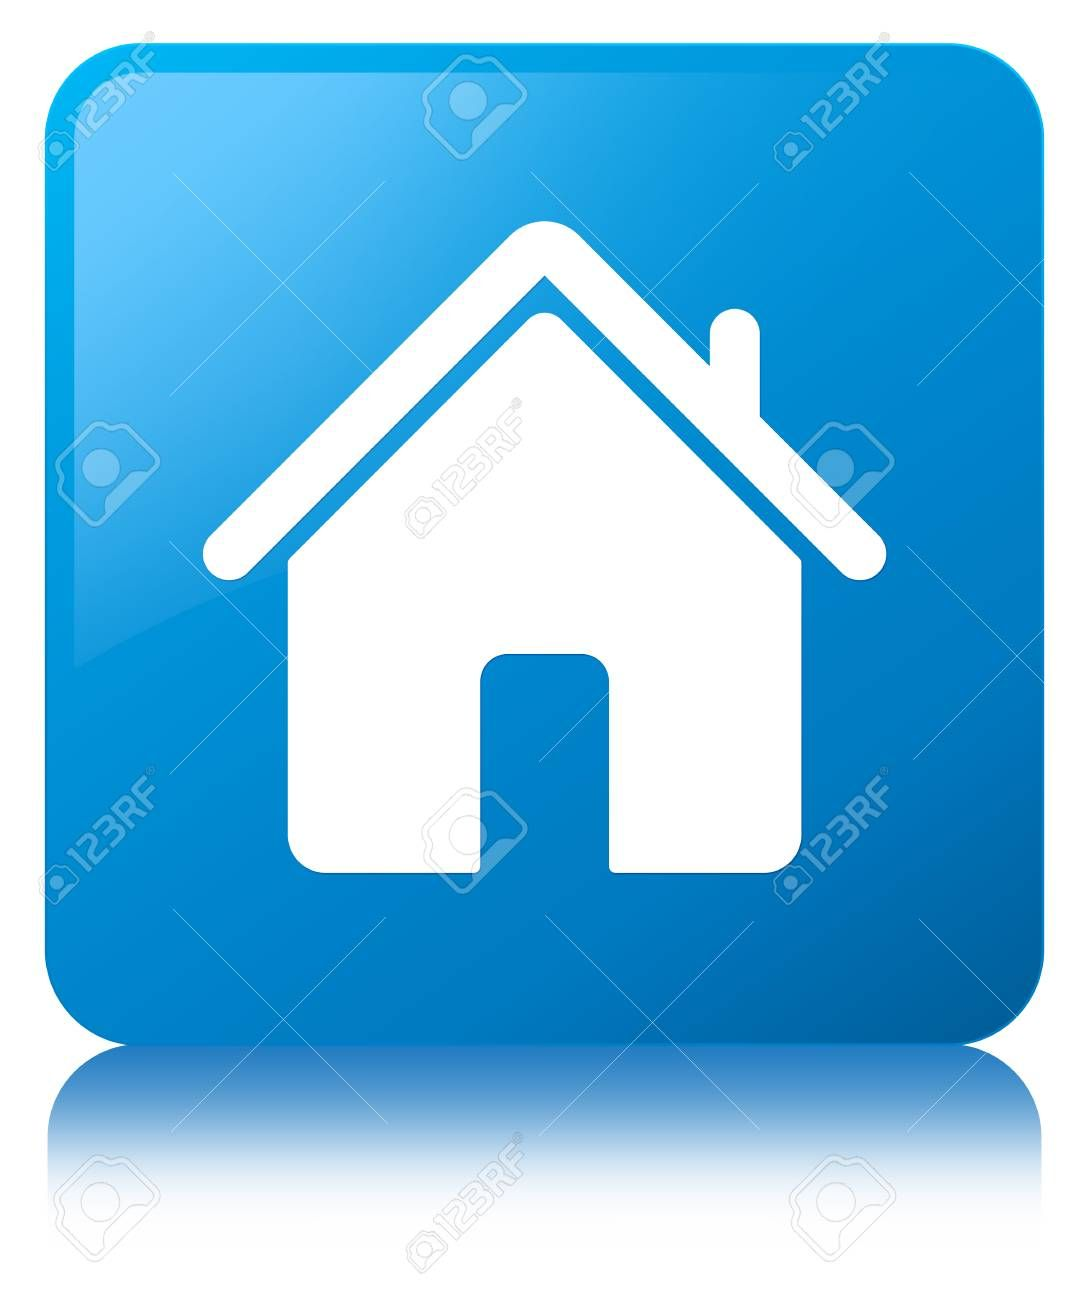 Home Icon Isolated On Cyan Blue Square Button Reflected Abstract Illustration Stock Photo Ad Cyan B Logo Design Typography Home Icon Fitness Logo Design